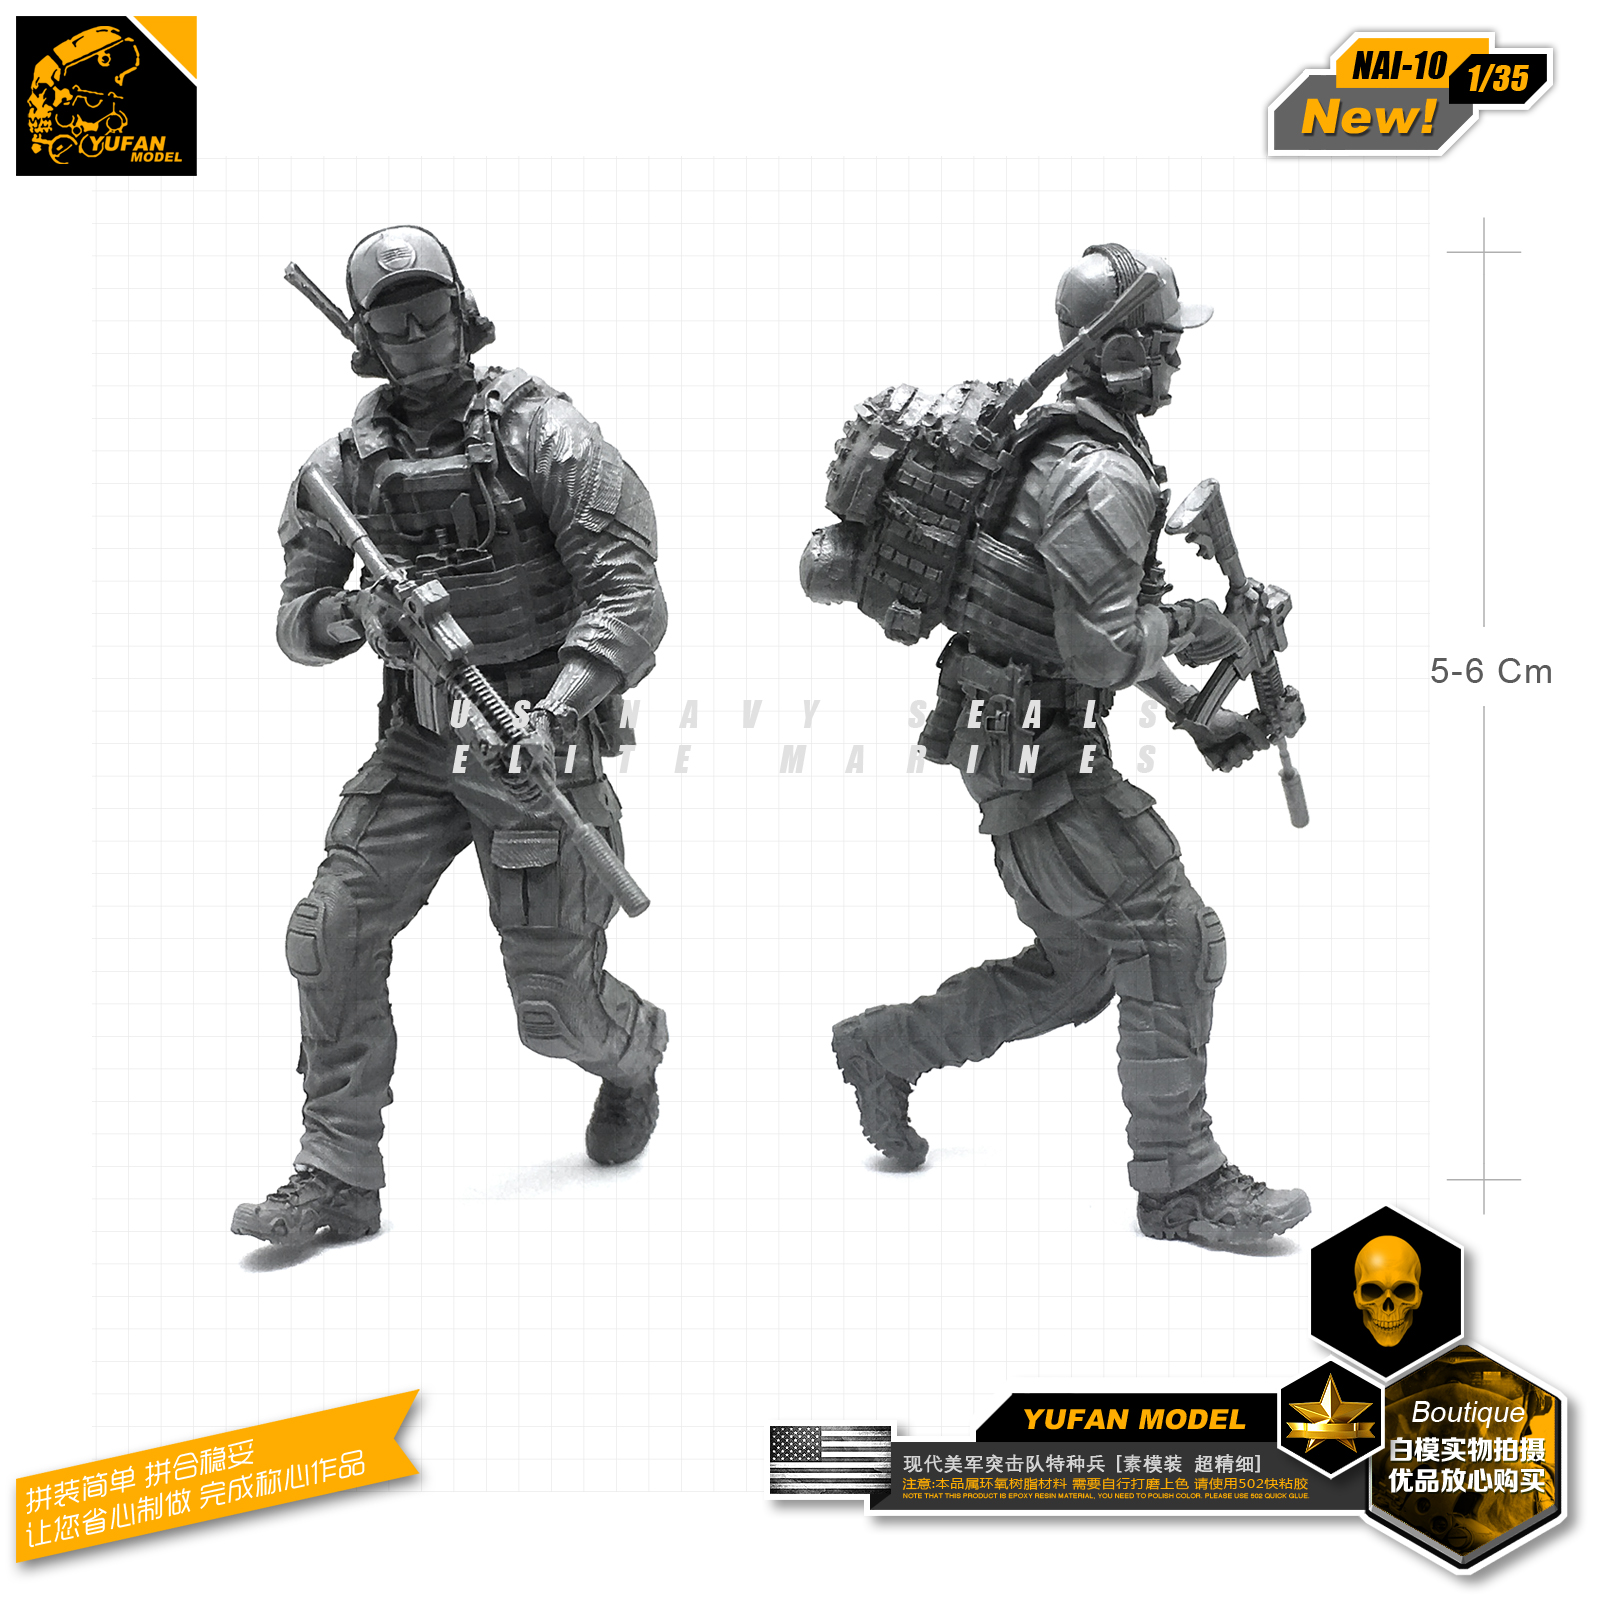 Yufan Model 1/35 Resin Soldier Model Accessories Kits For Modern American Seals  Unmounted Nai-10